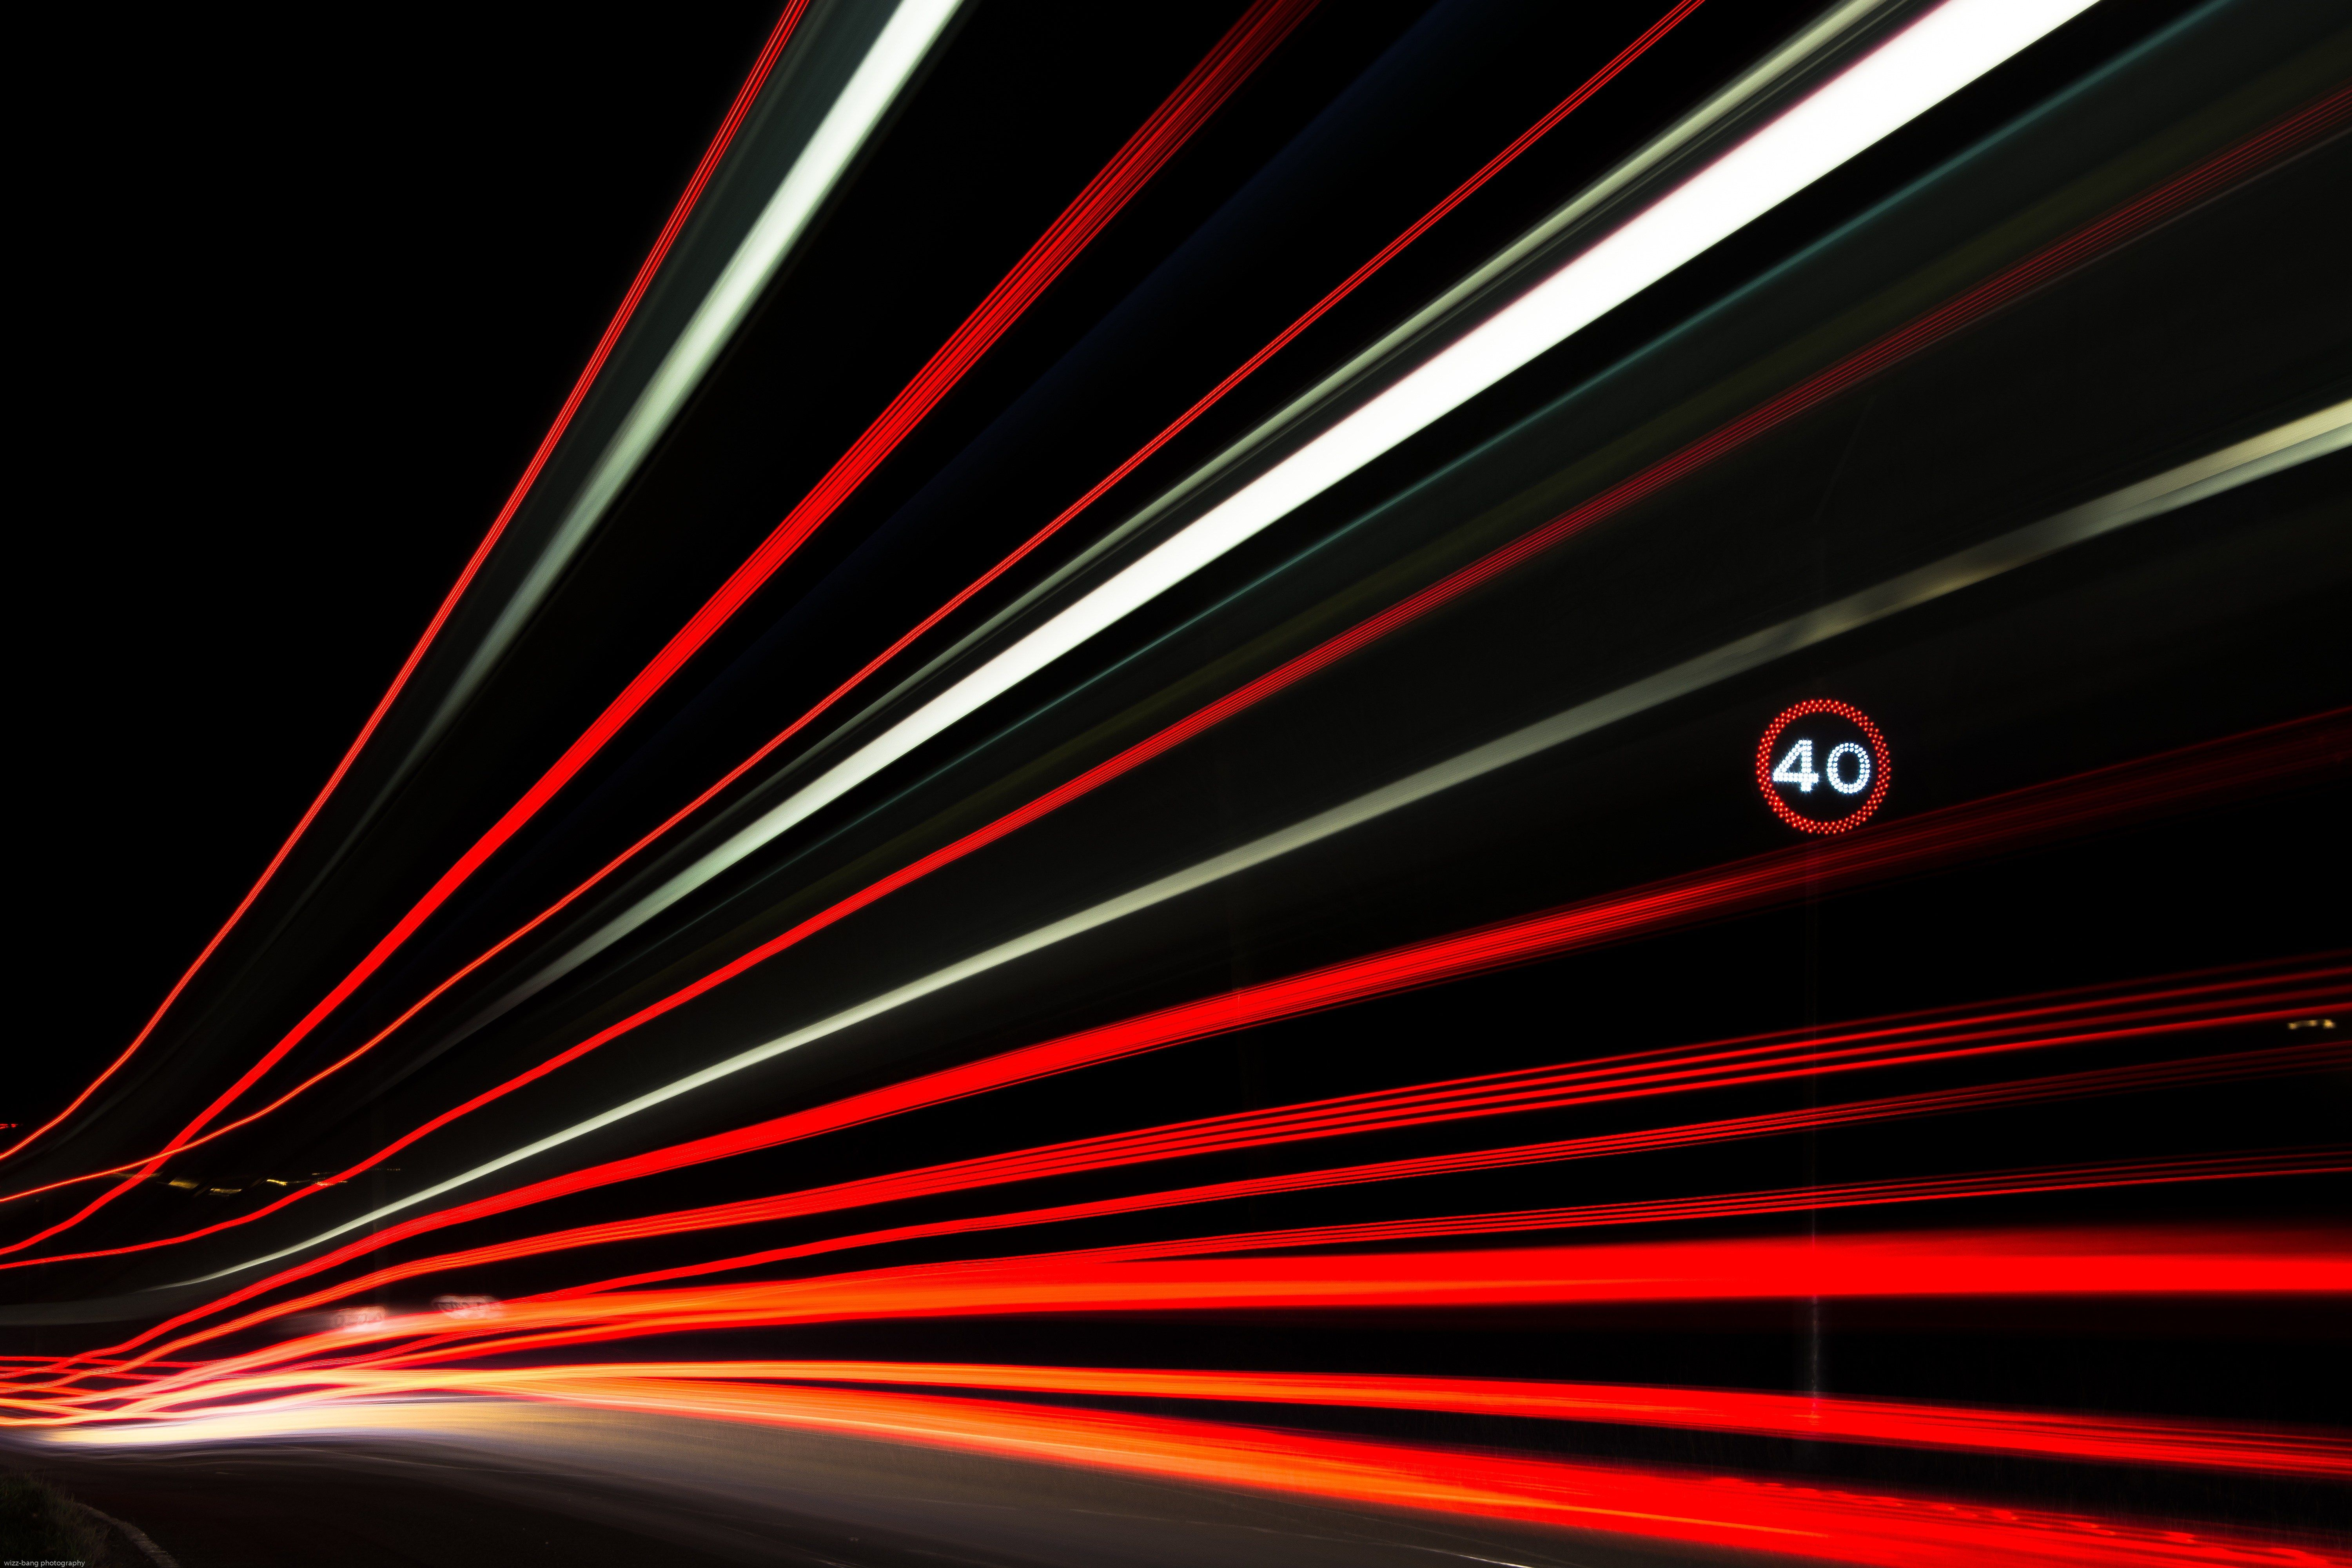 How To Shoot Light Trails Light Trails Light Trail Photography Images, Photos, Reviews